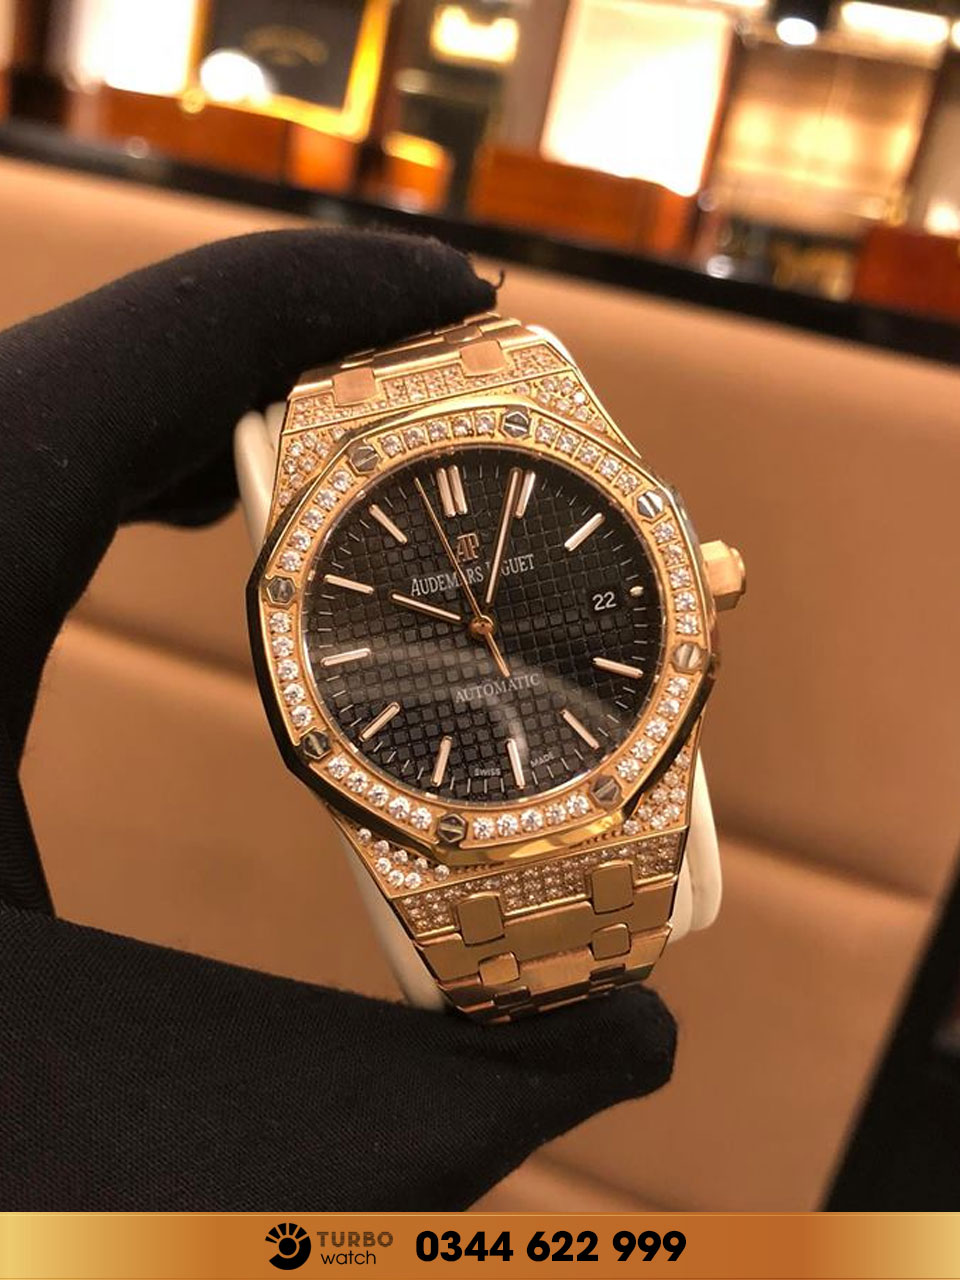 Audemas piguet Royal Oak Gold Diamond black fake 1-1 cao cấp